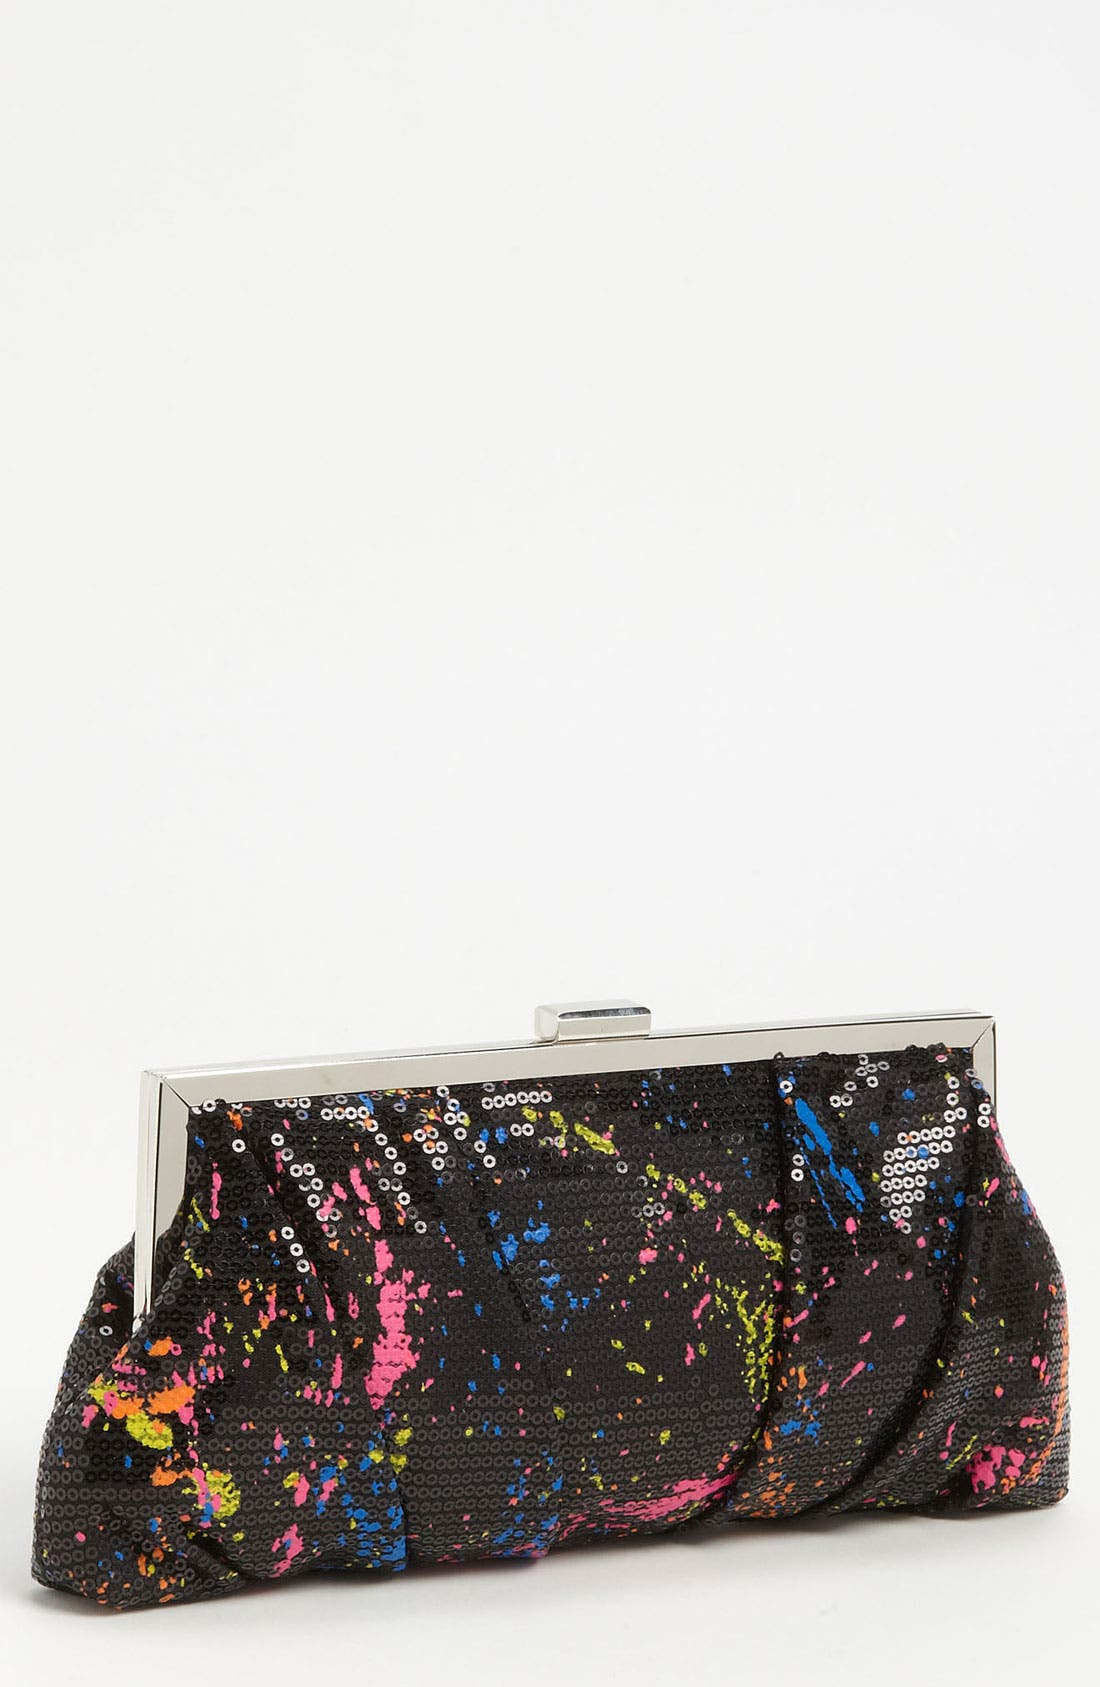 Main Image - Jessica McClintock 'Graffiti' Clutch